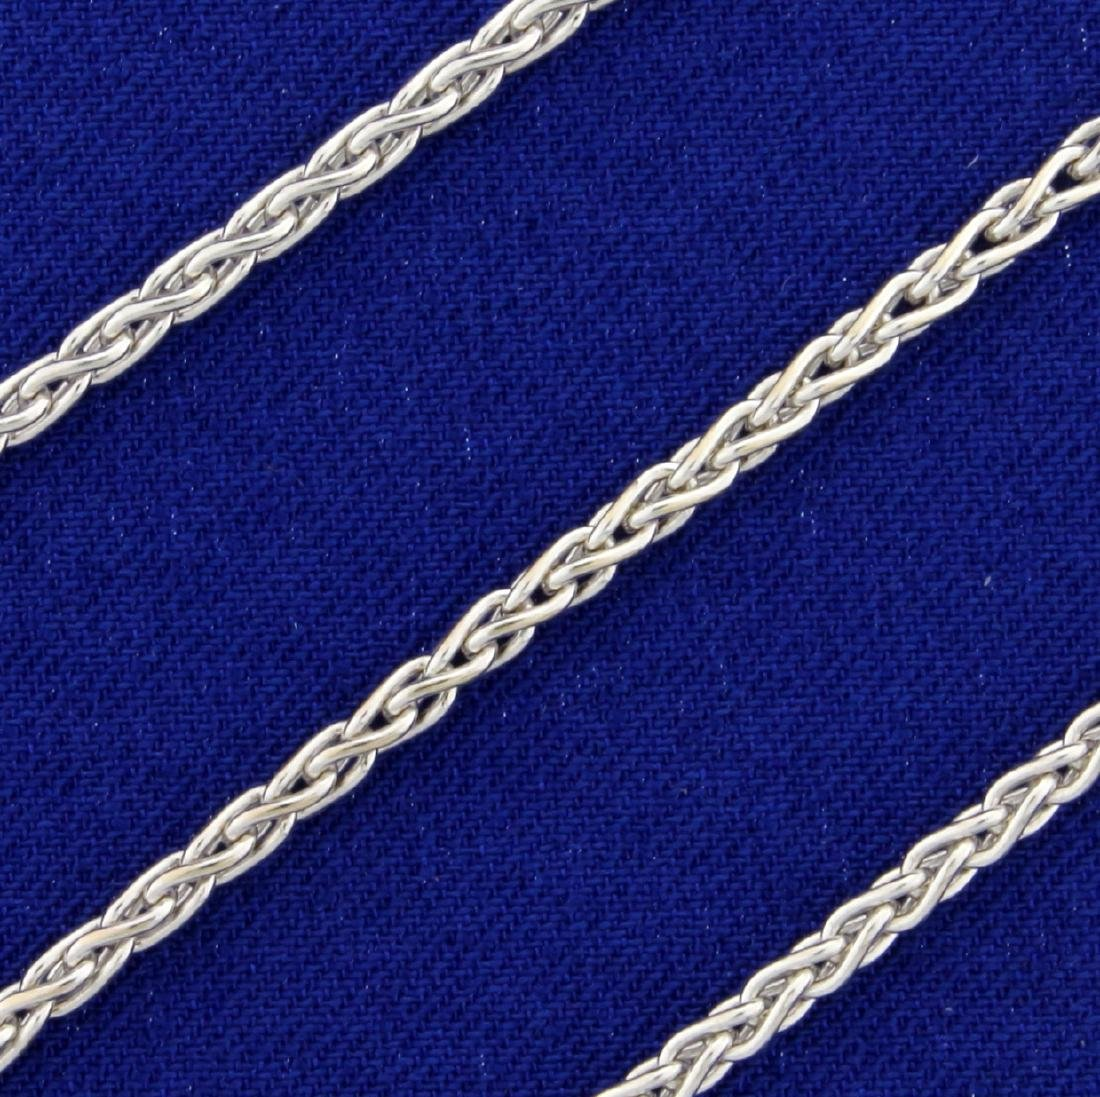 19 Inch Wheat Link Neck Chain in 14K White Gold - 2